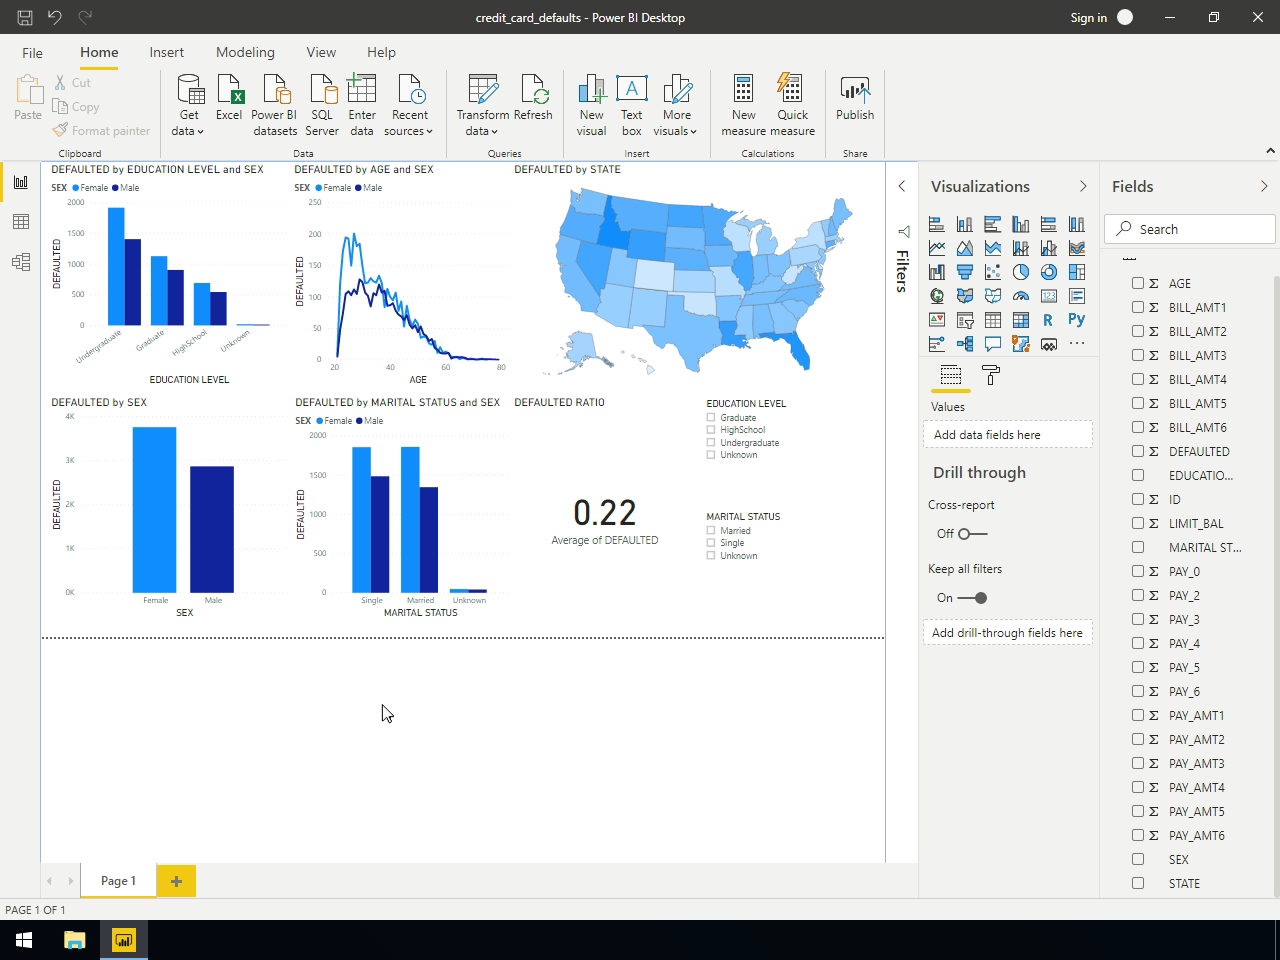 Getting Started with Power BI Desktop